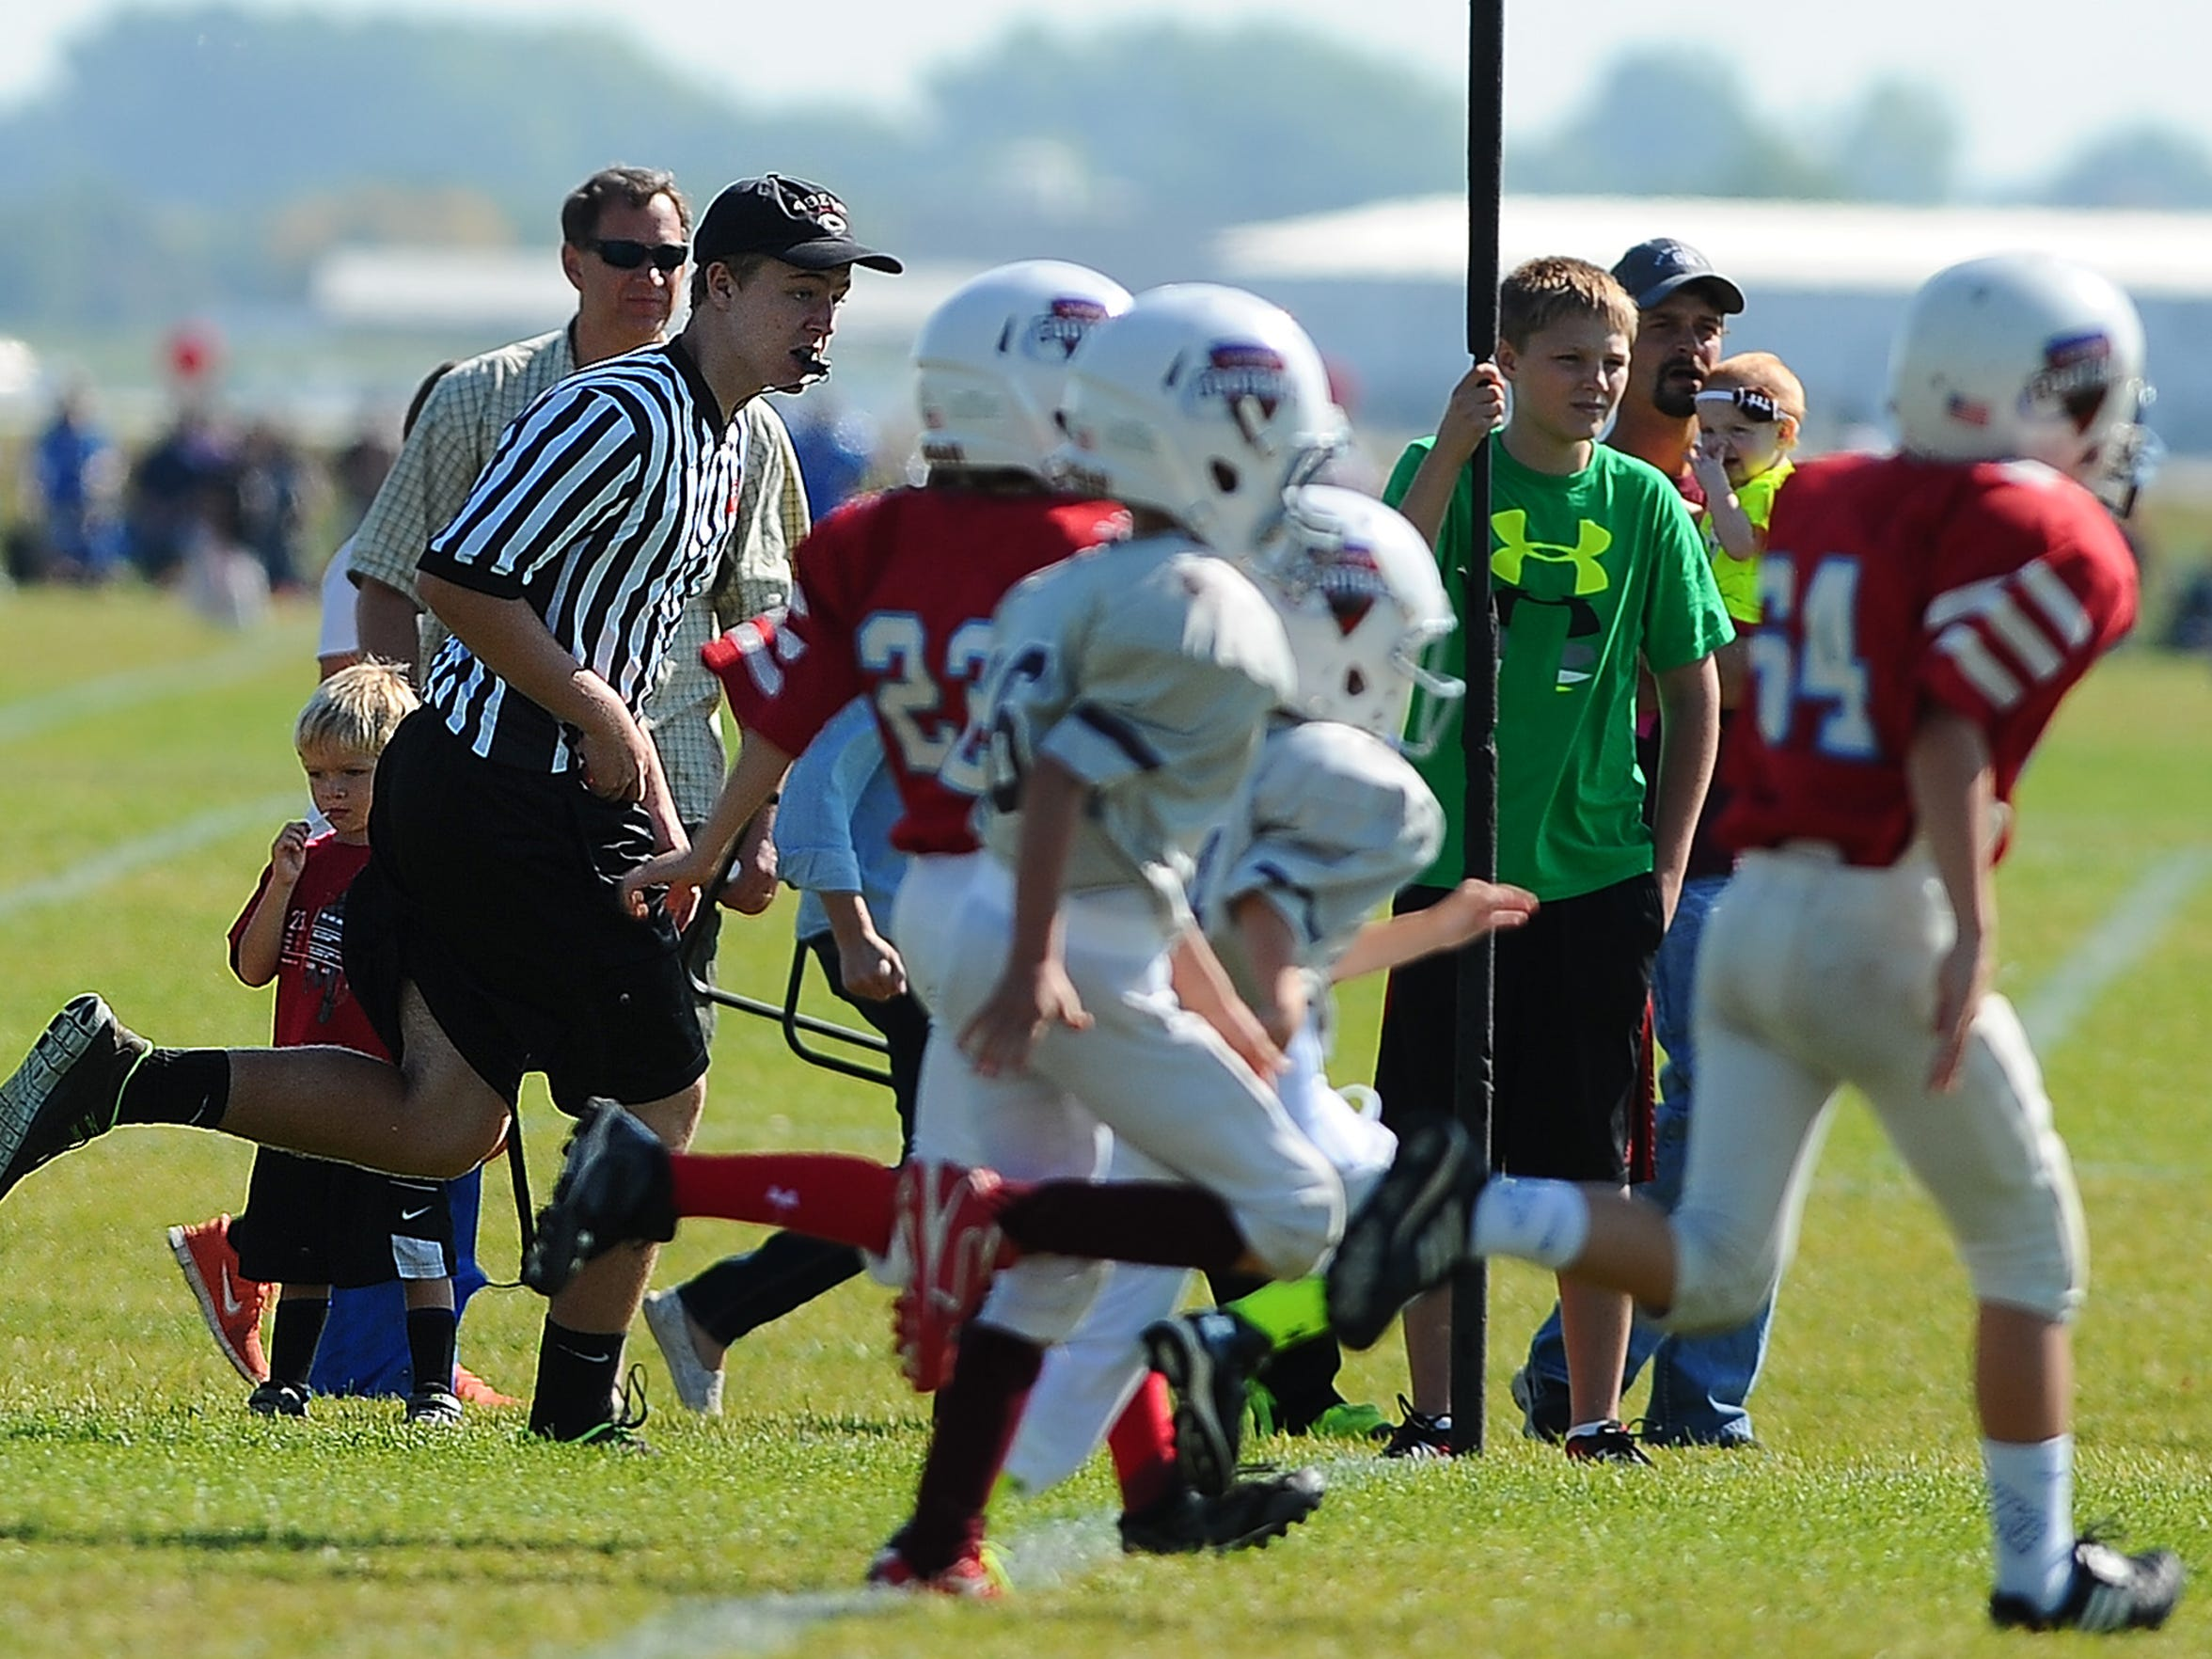 d1b1741d4 Xavier Kolb officiates a South Dakota Junior Football game at the Sanford  Sports Complex on Sept. 20. (Photo  Jay Pickthorn - Argus Leader Jay  Pickthorn ...